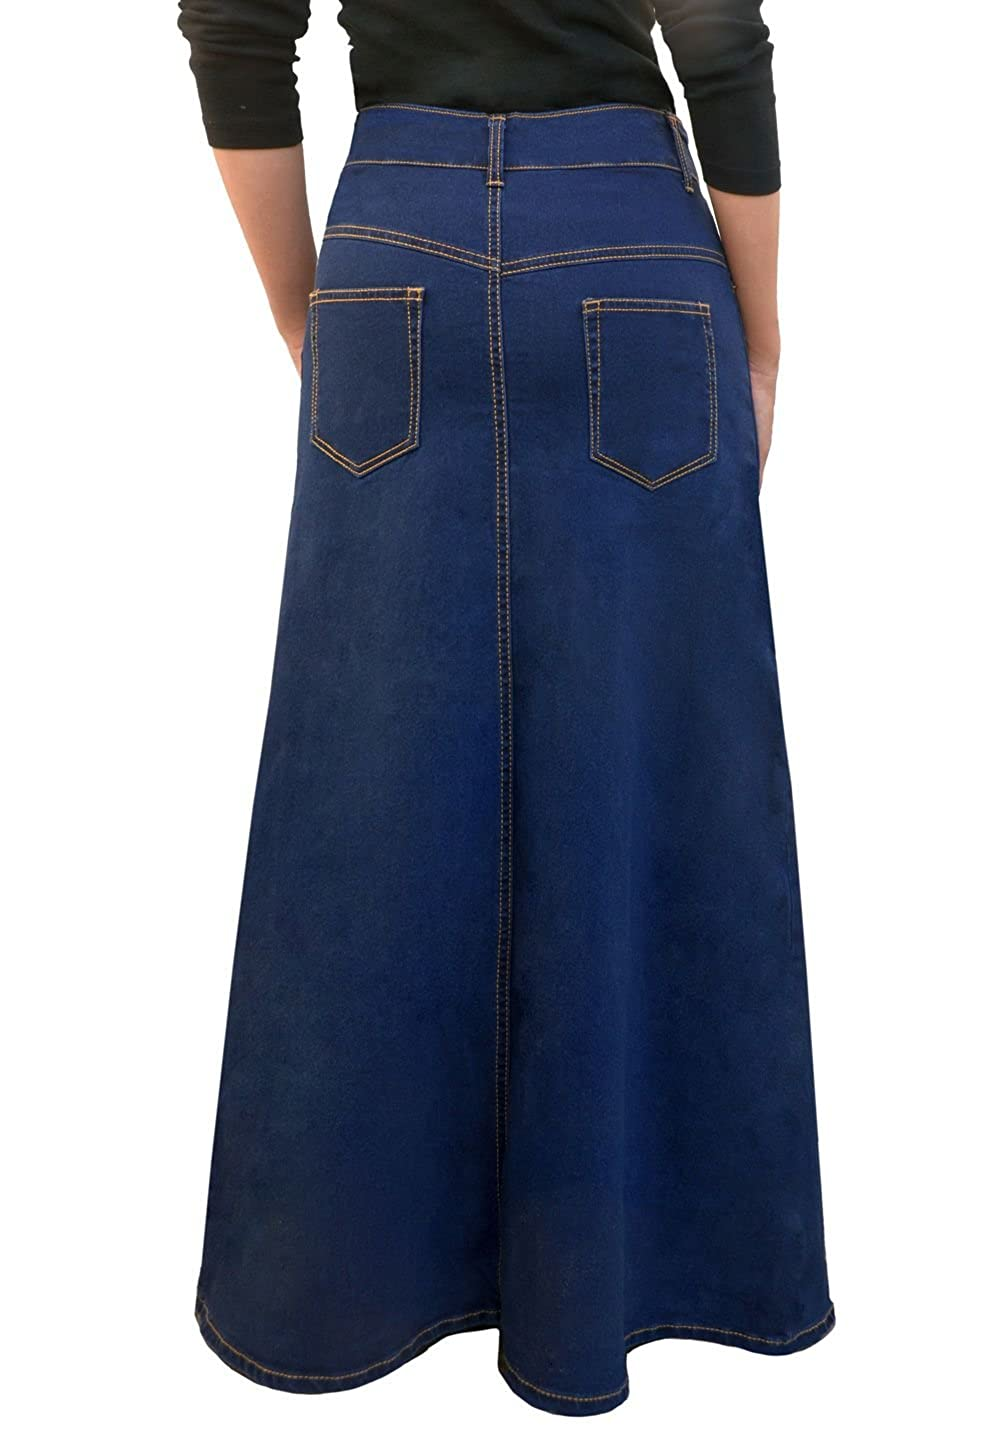 4f6f6cd9bc Kosher Casual Women's Modest Long A-Line Maxi Denim Skirt - No Slits at  Amazon Women's Clothing store: